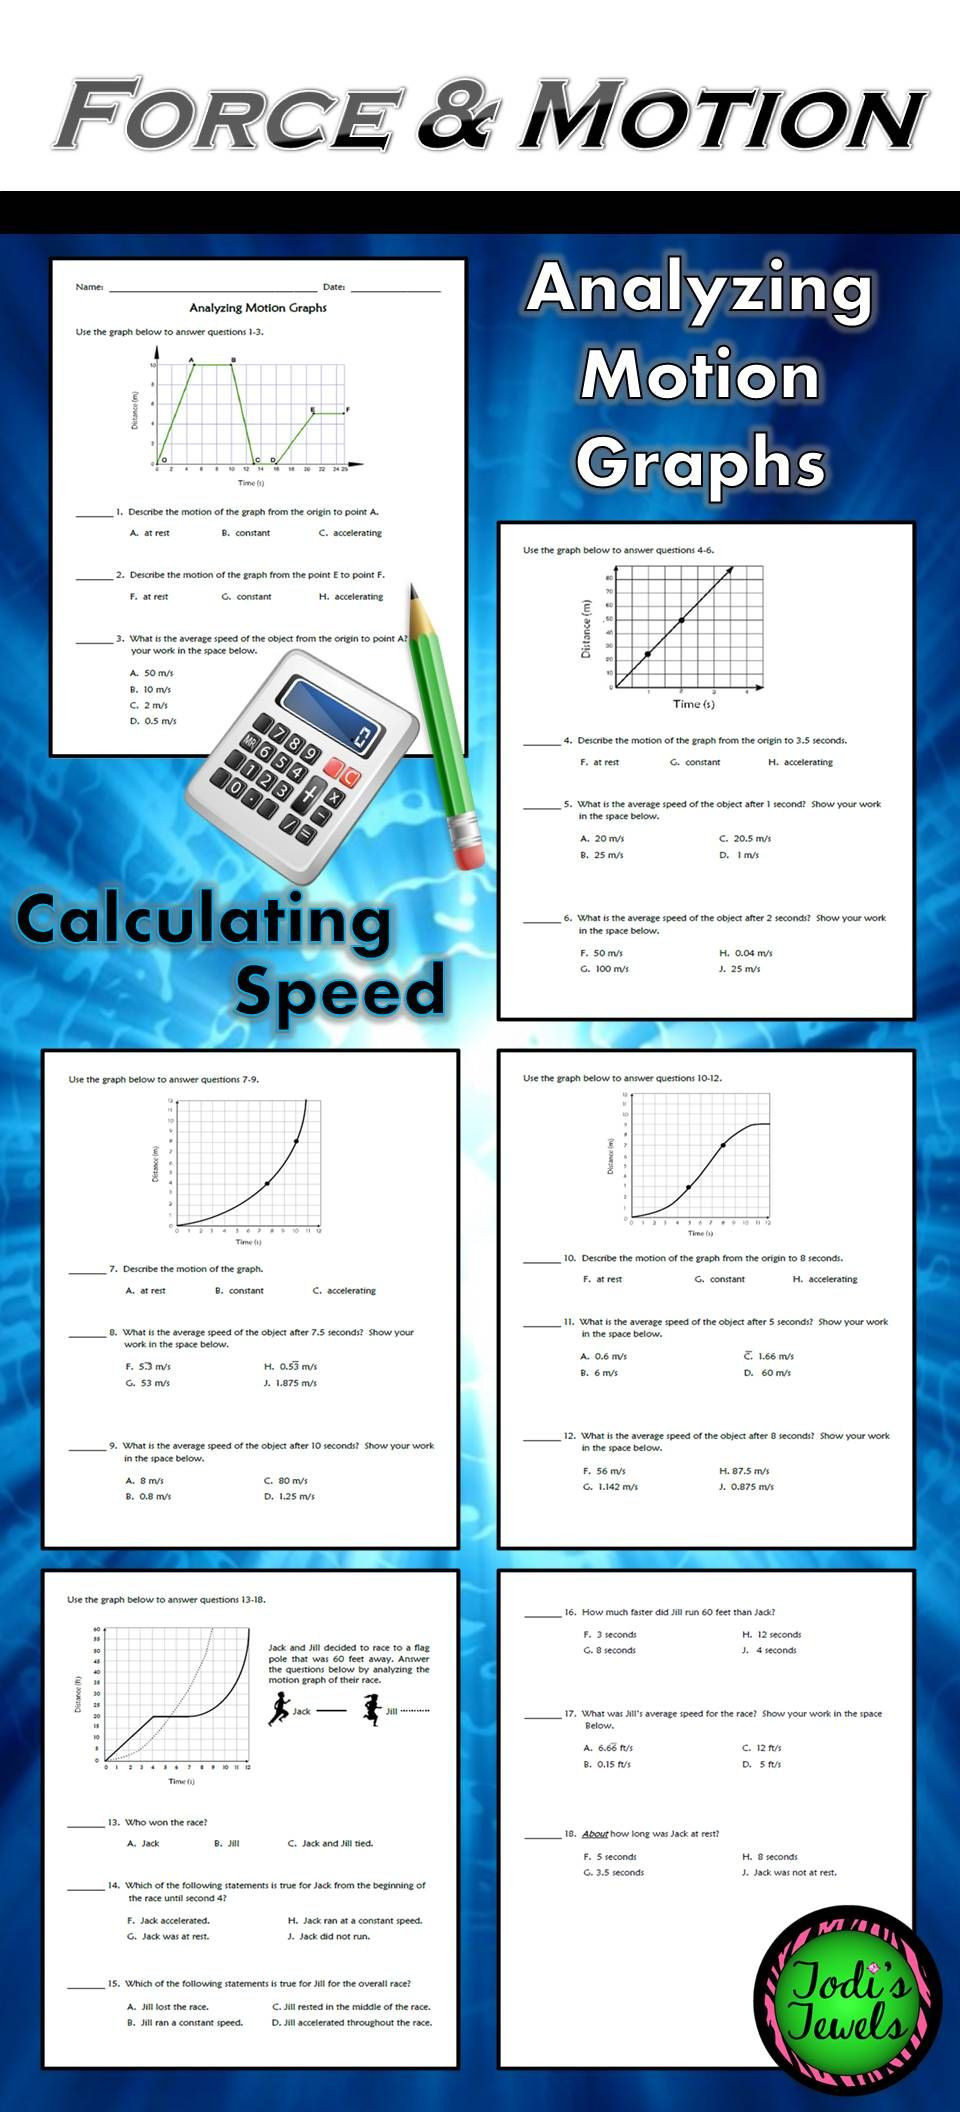 Motion Graphs Worksheet Answer Key Analyzing Motion Graphs & Calculating Speed Ws